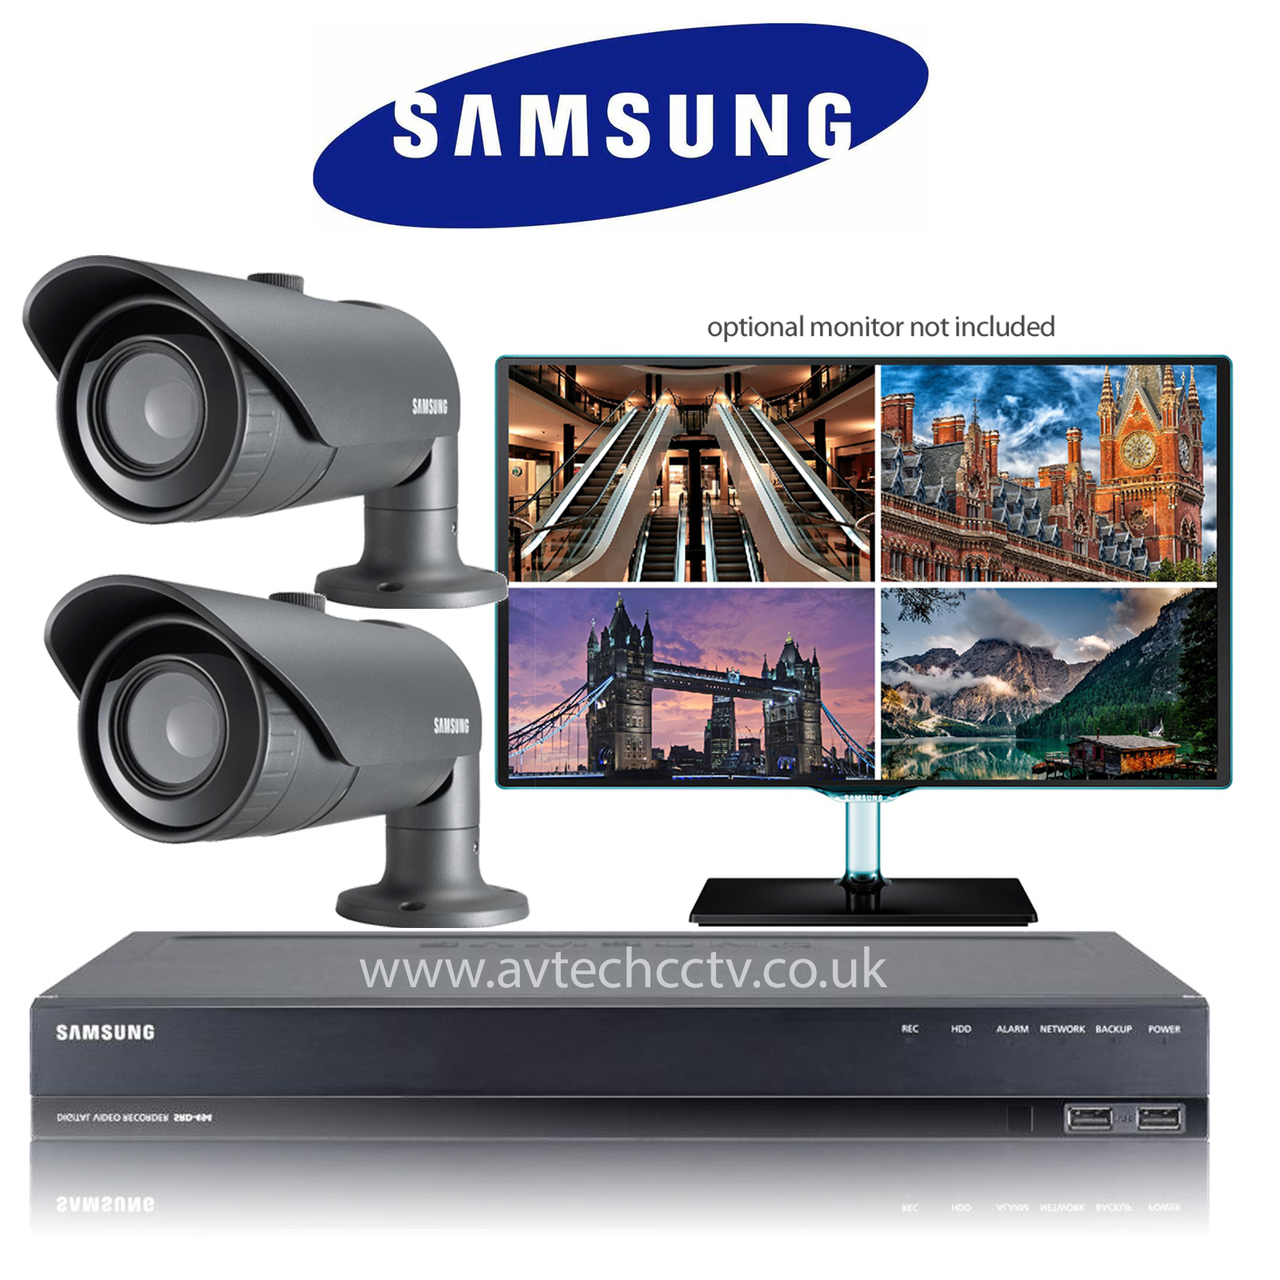 2 Samsung CCTV Wisenet HD Security Camera system with Bullet Vari lens